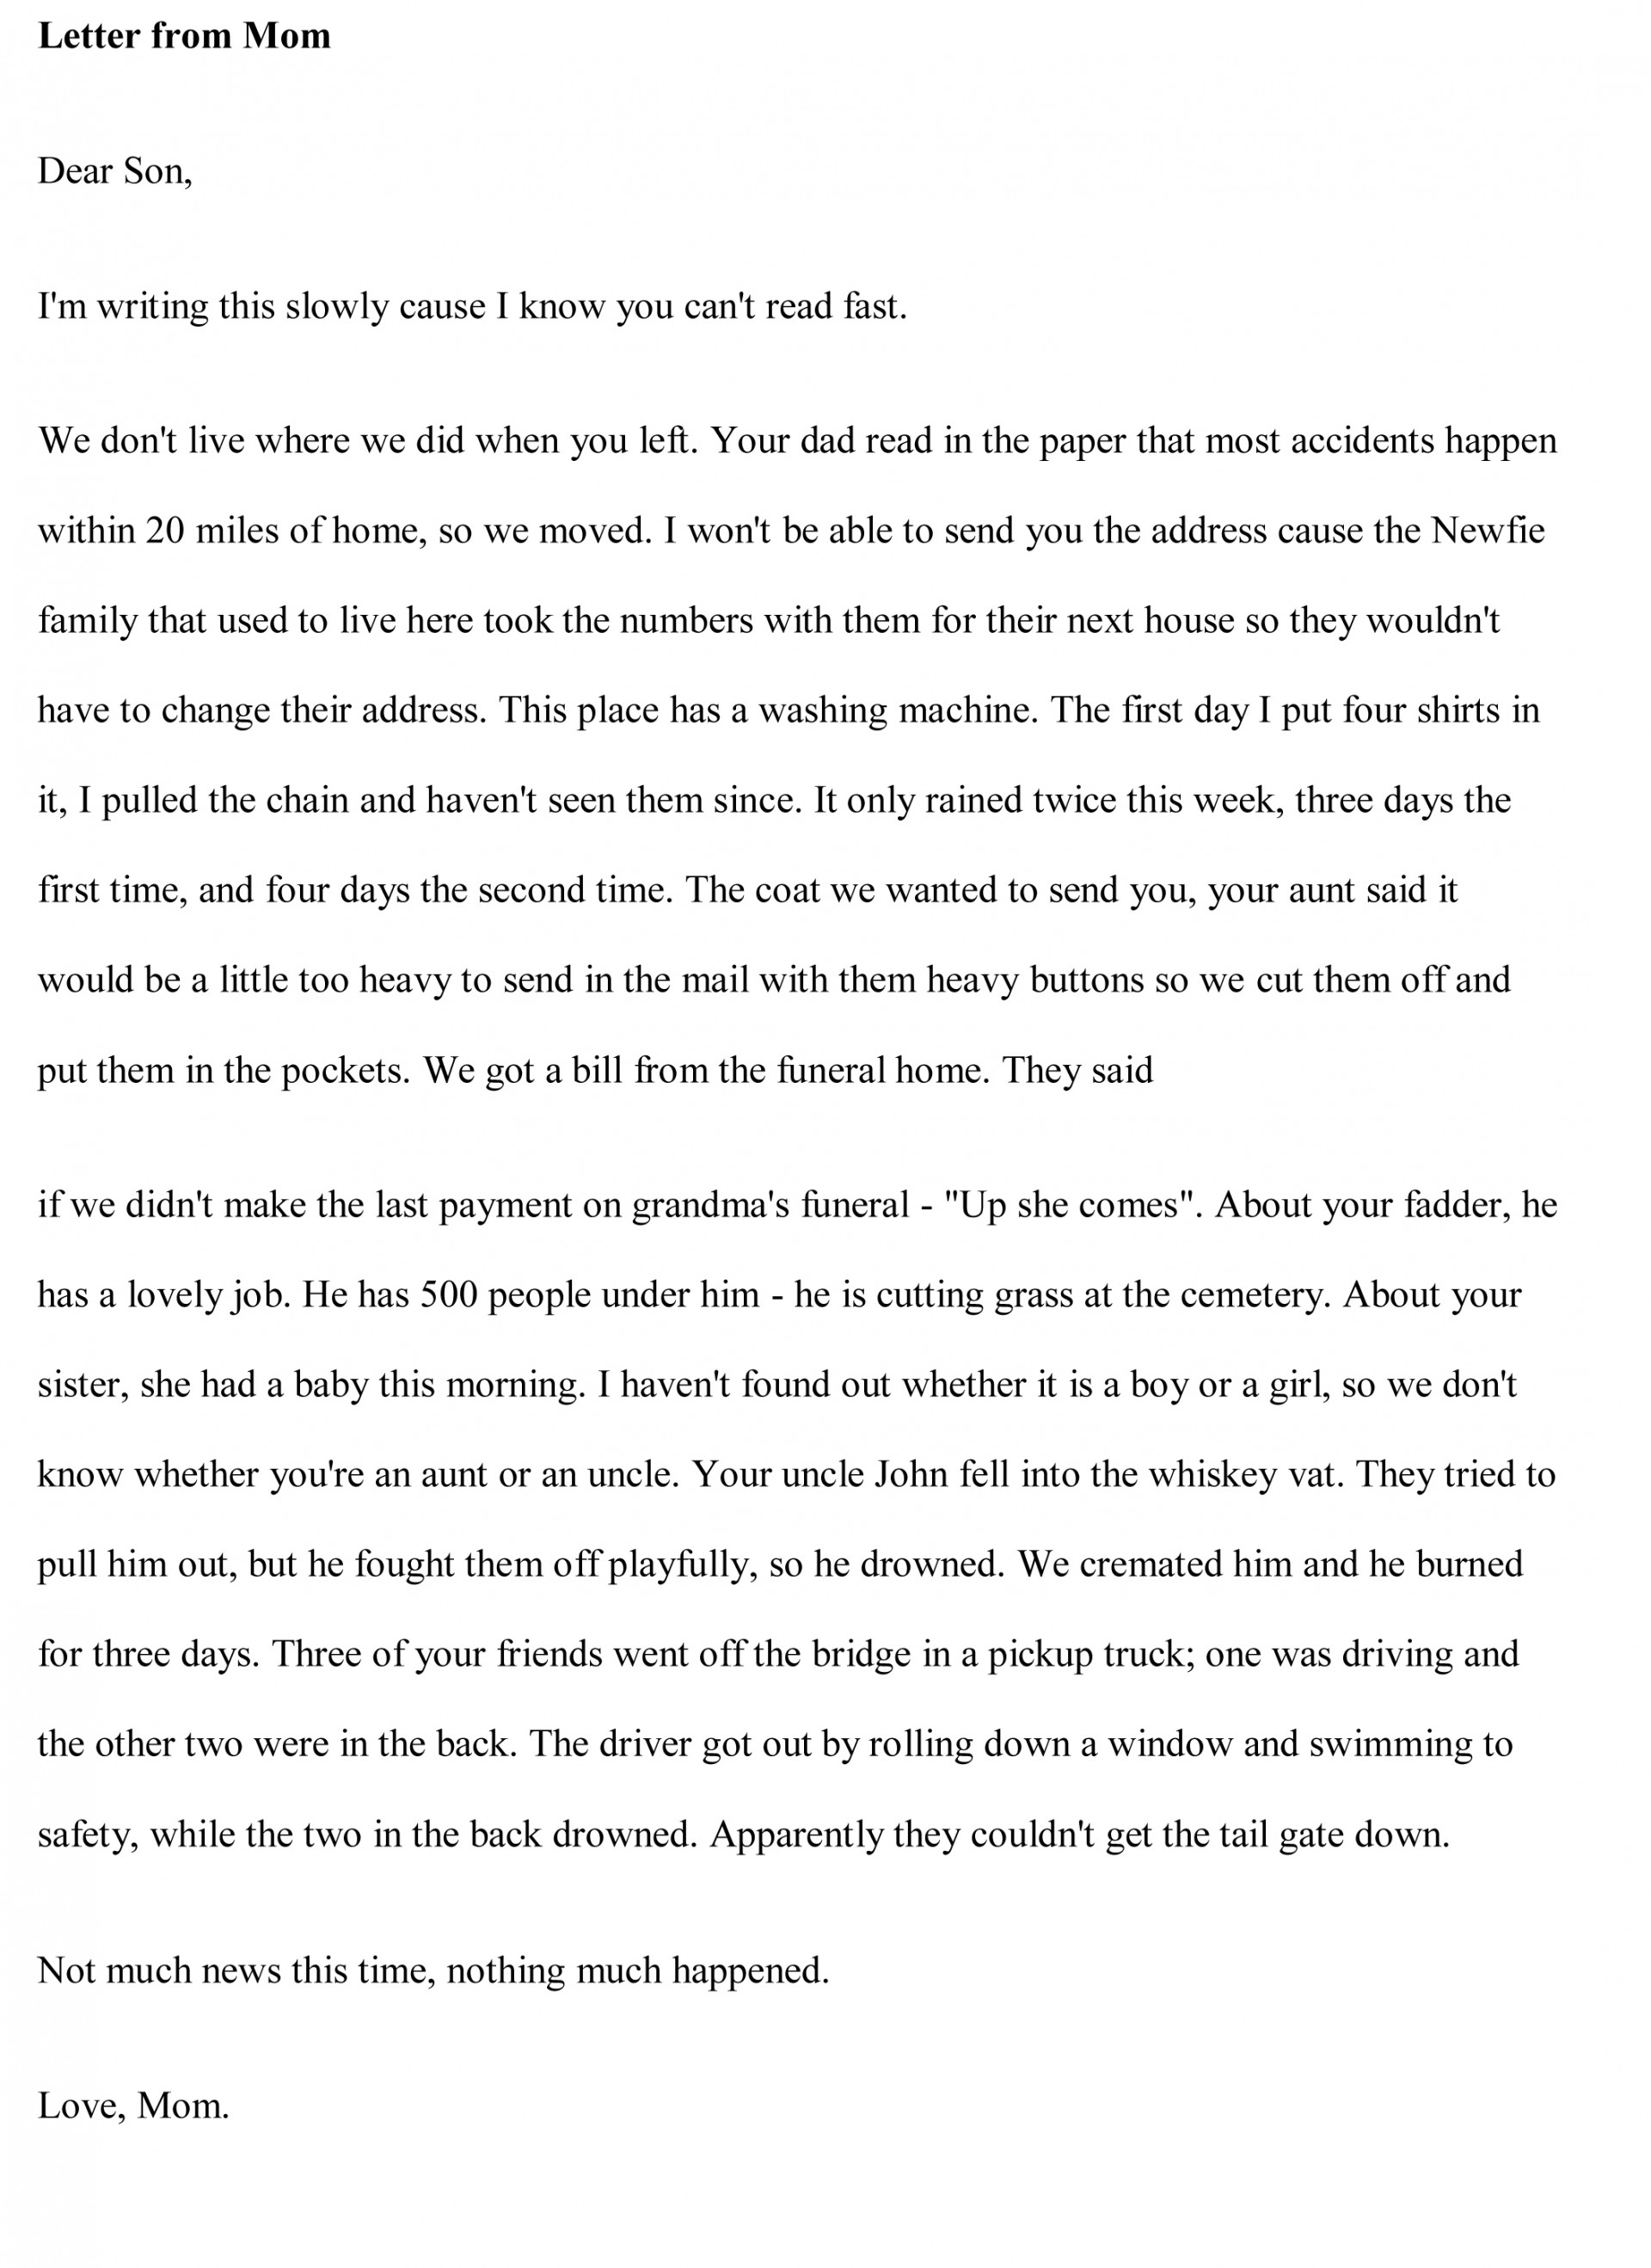 007 Funny Research Paper Topics Essay Free Fearsome Ideas Argumentative 1920